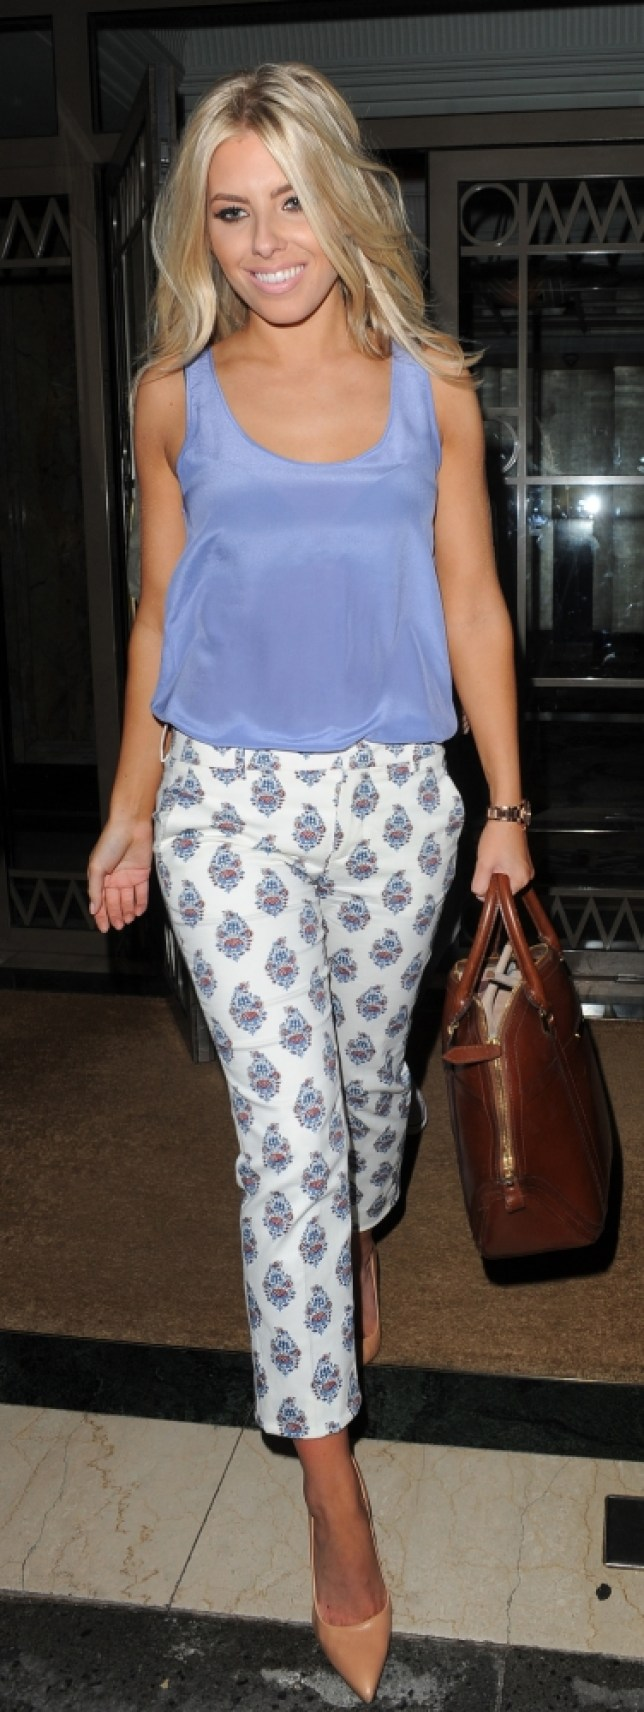 Mollie King from girl group The Saturdays (Picture: Squirrel/Splash News)